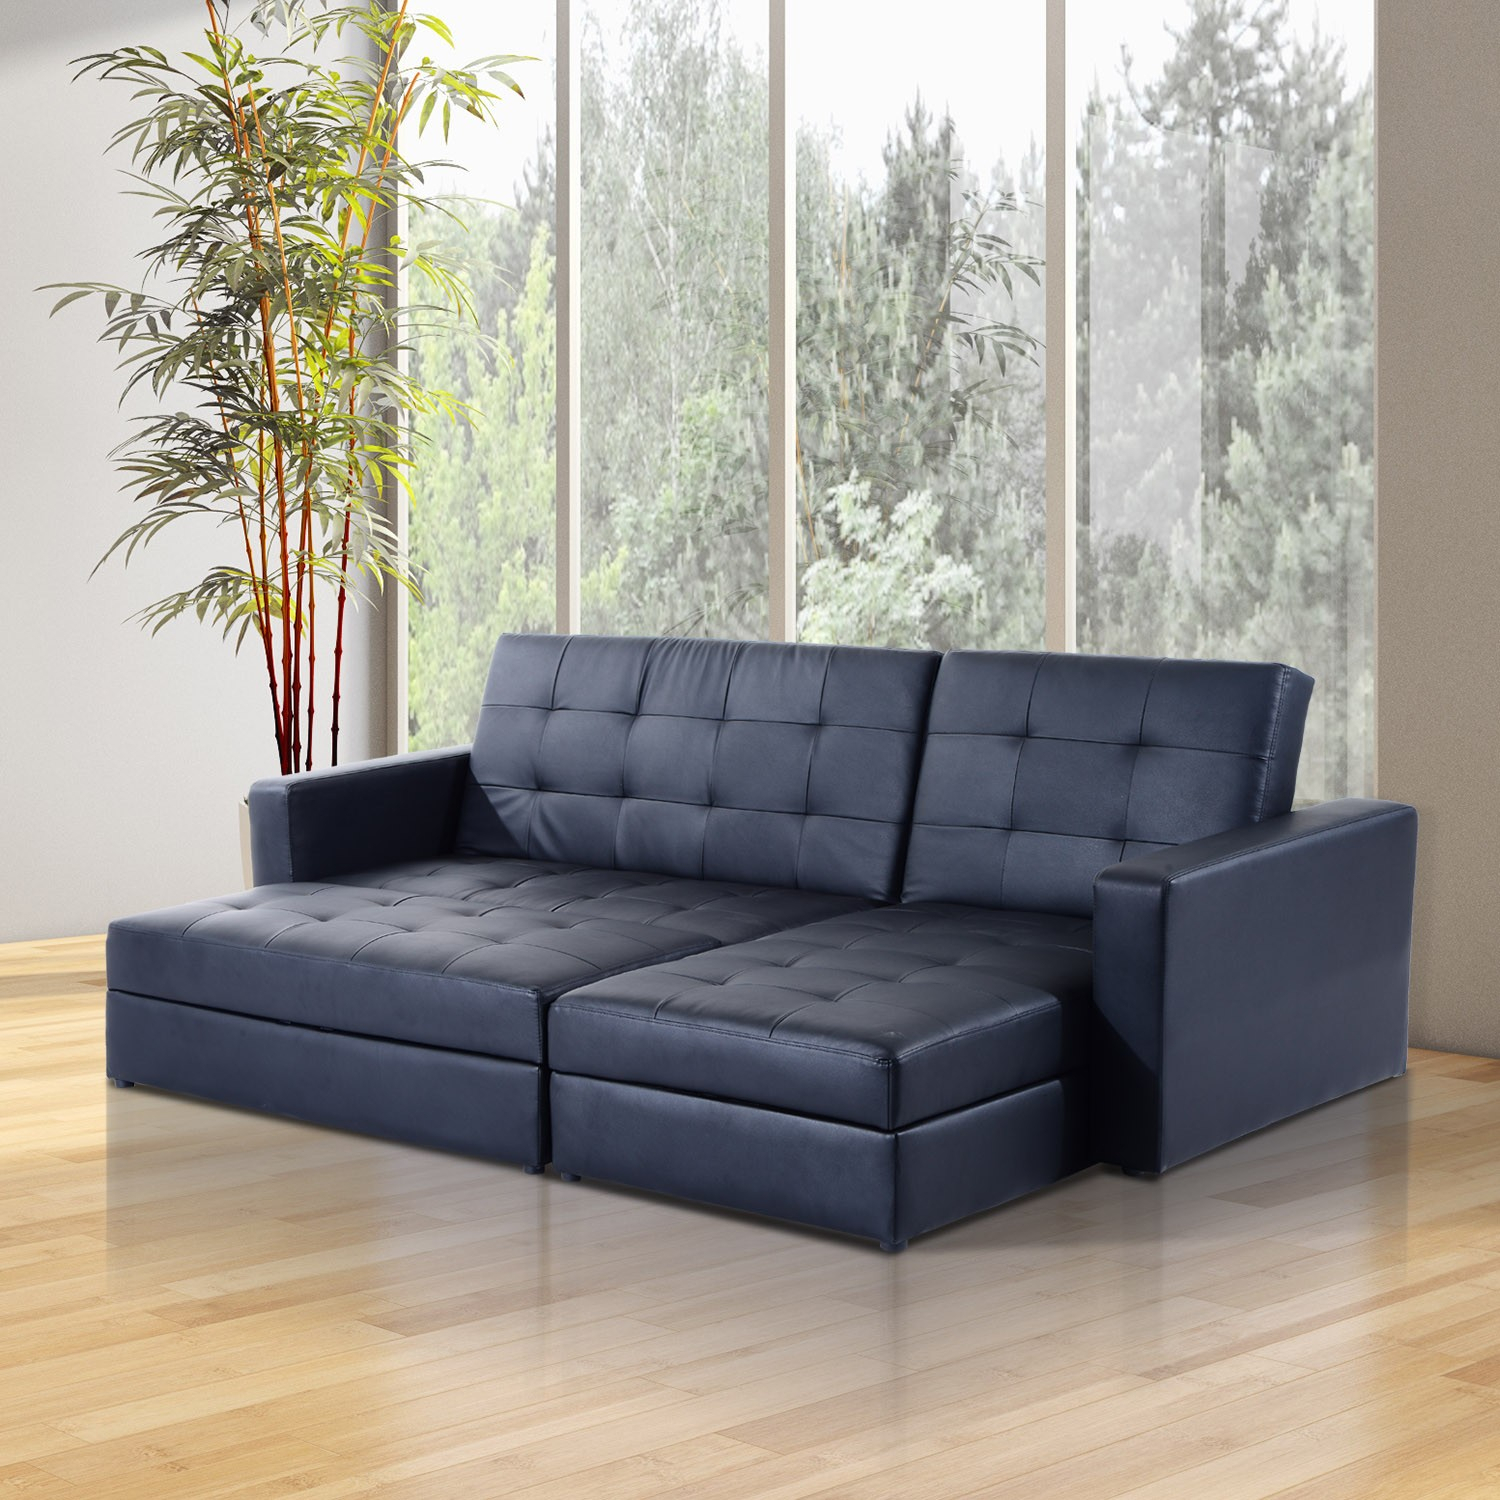 Homcom Button Tufted Sofa Bed Set Sectional Daybed Storage Pertaining To Sectional Sofas With Storage (View 5 of 15)